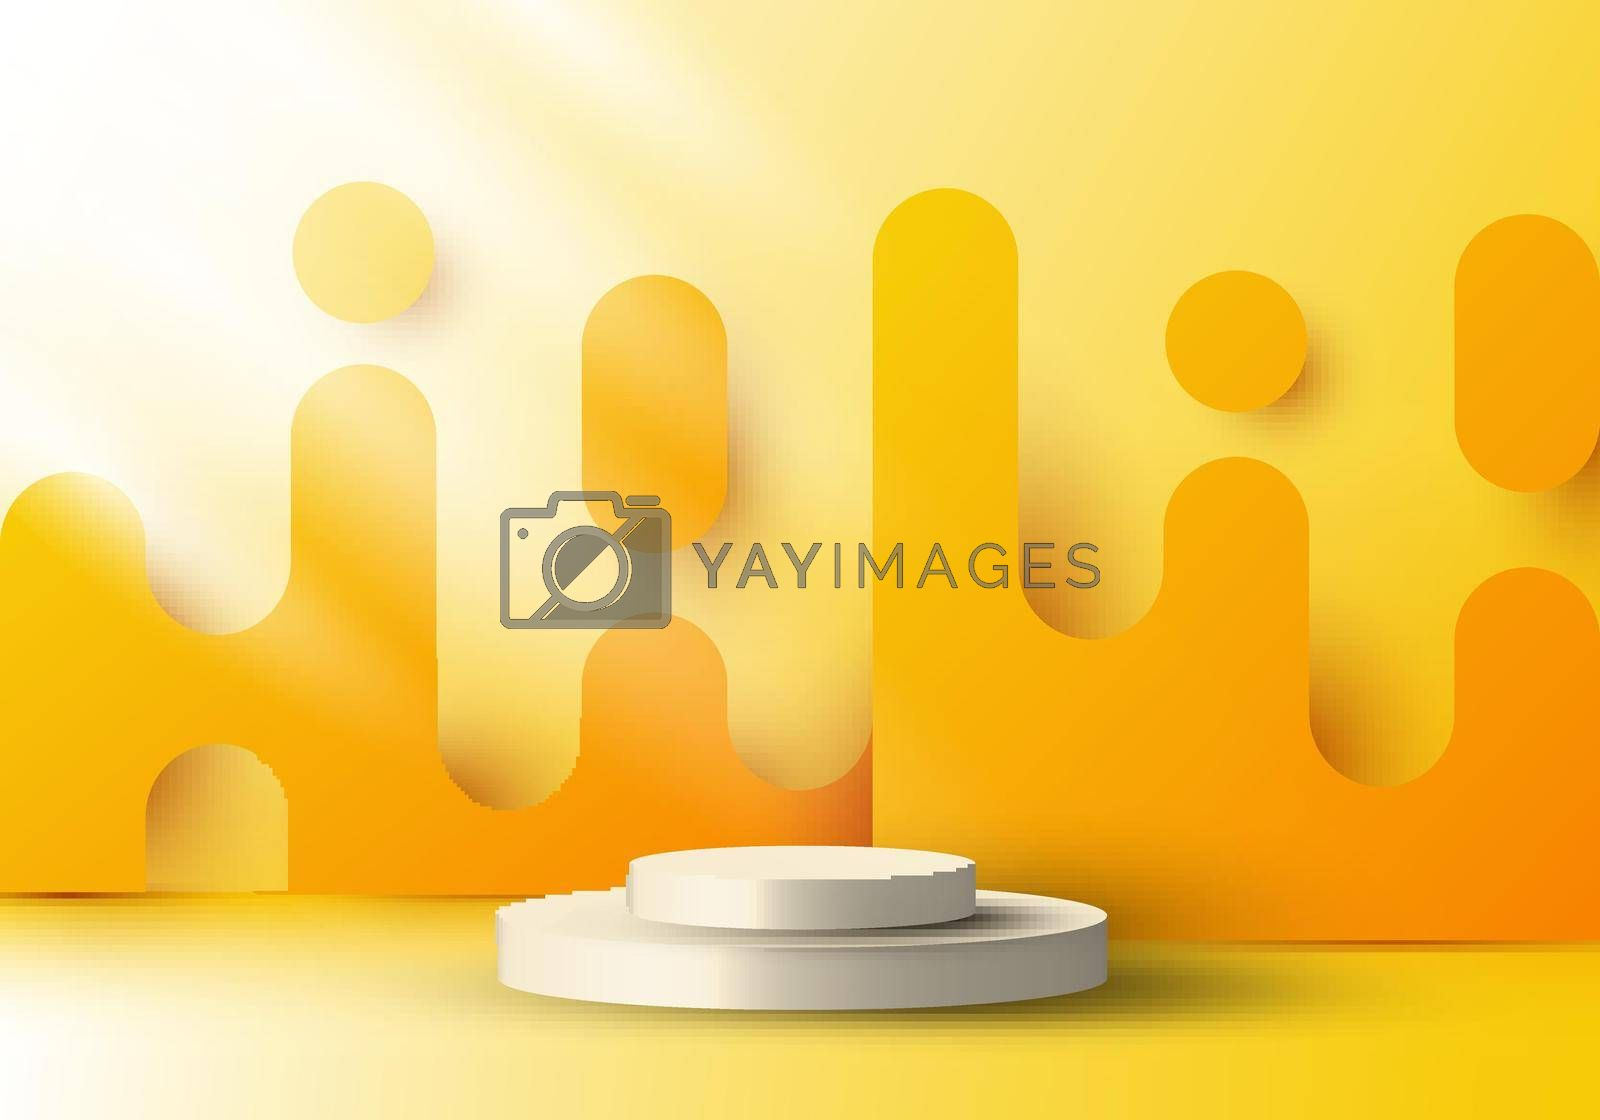 Royalty free image of 3D realistic display platform with yellow rounded lines backdrop graphic and lighting by phochi